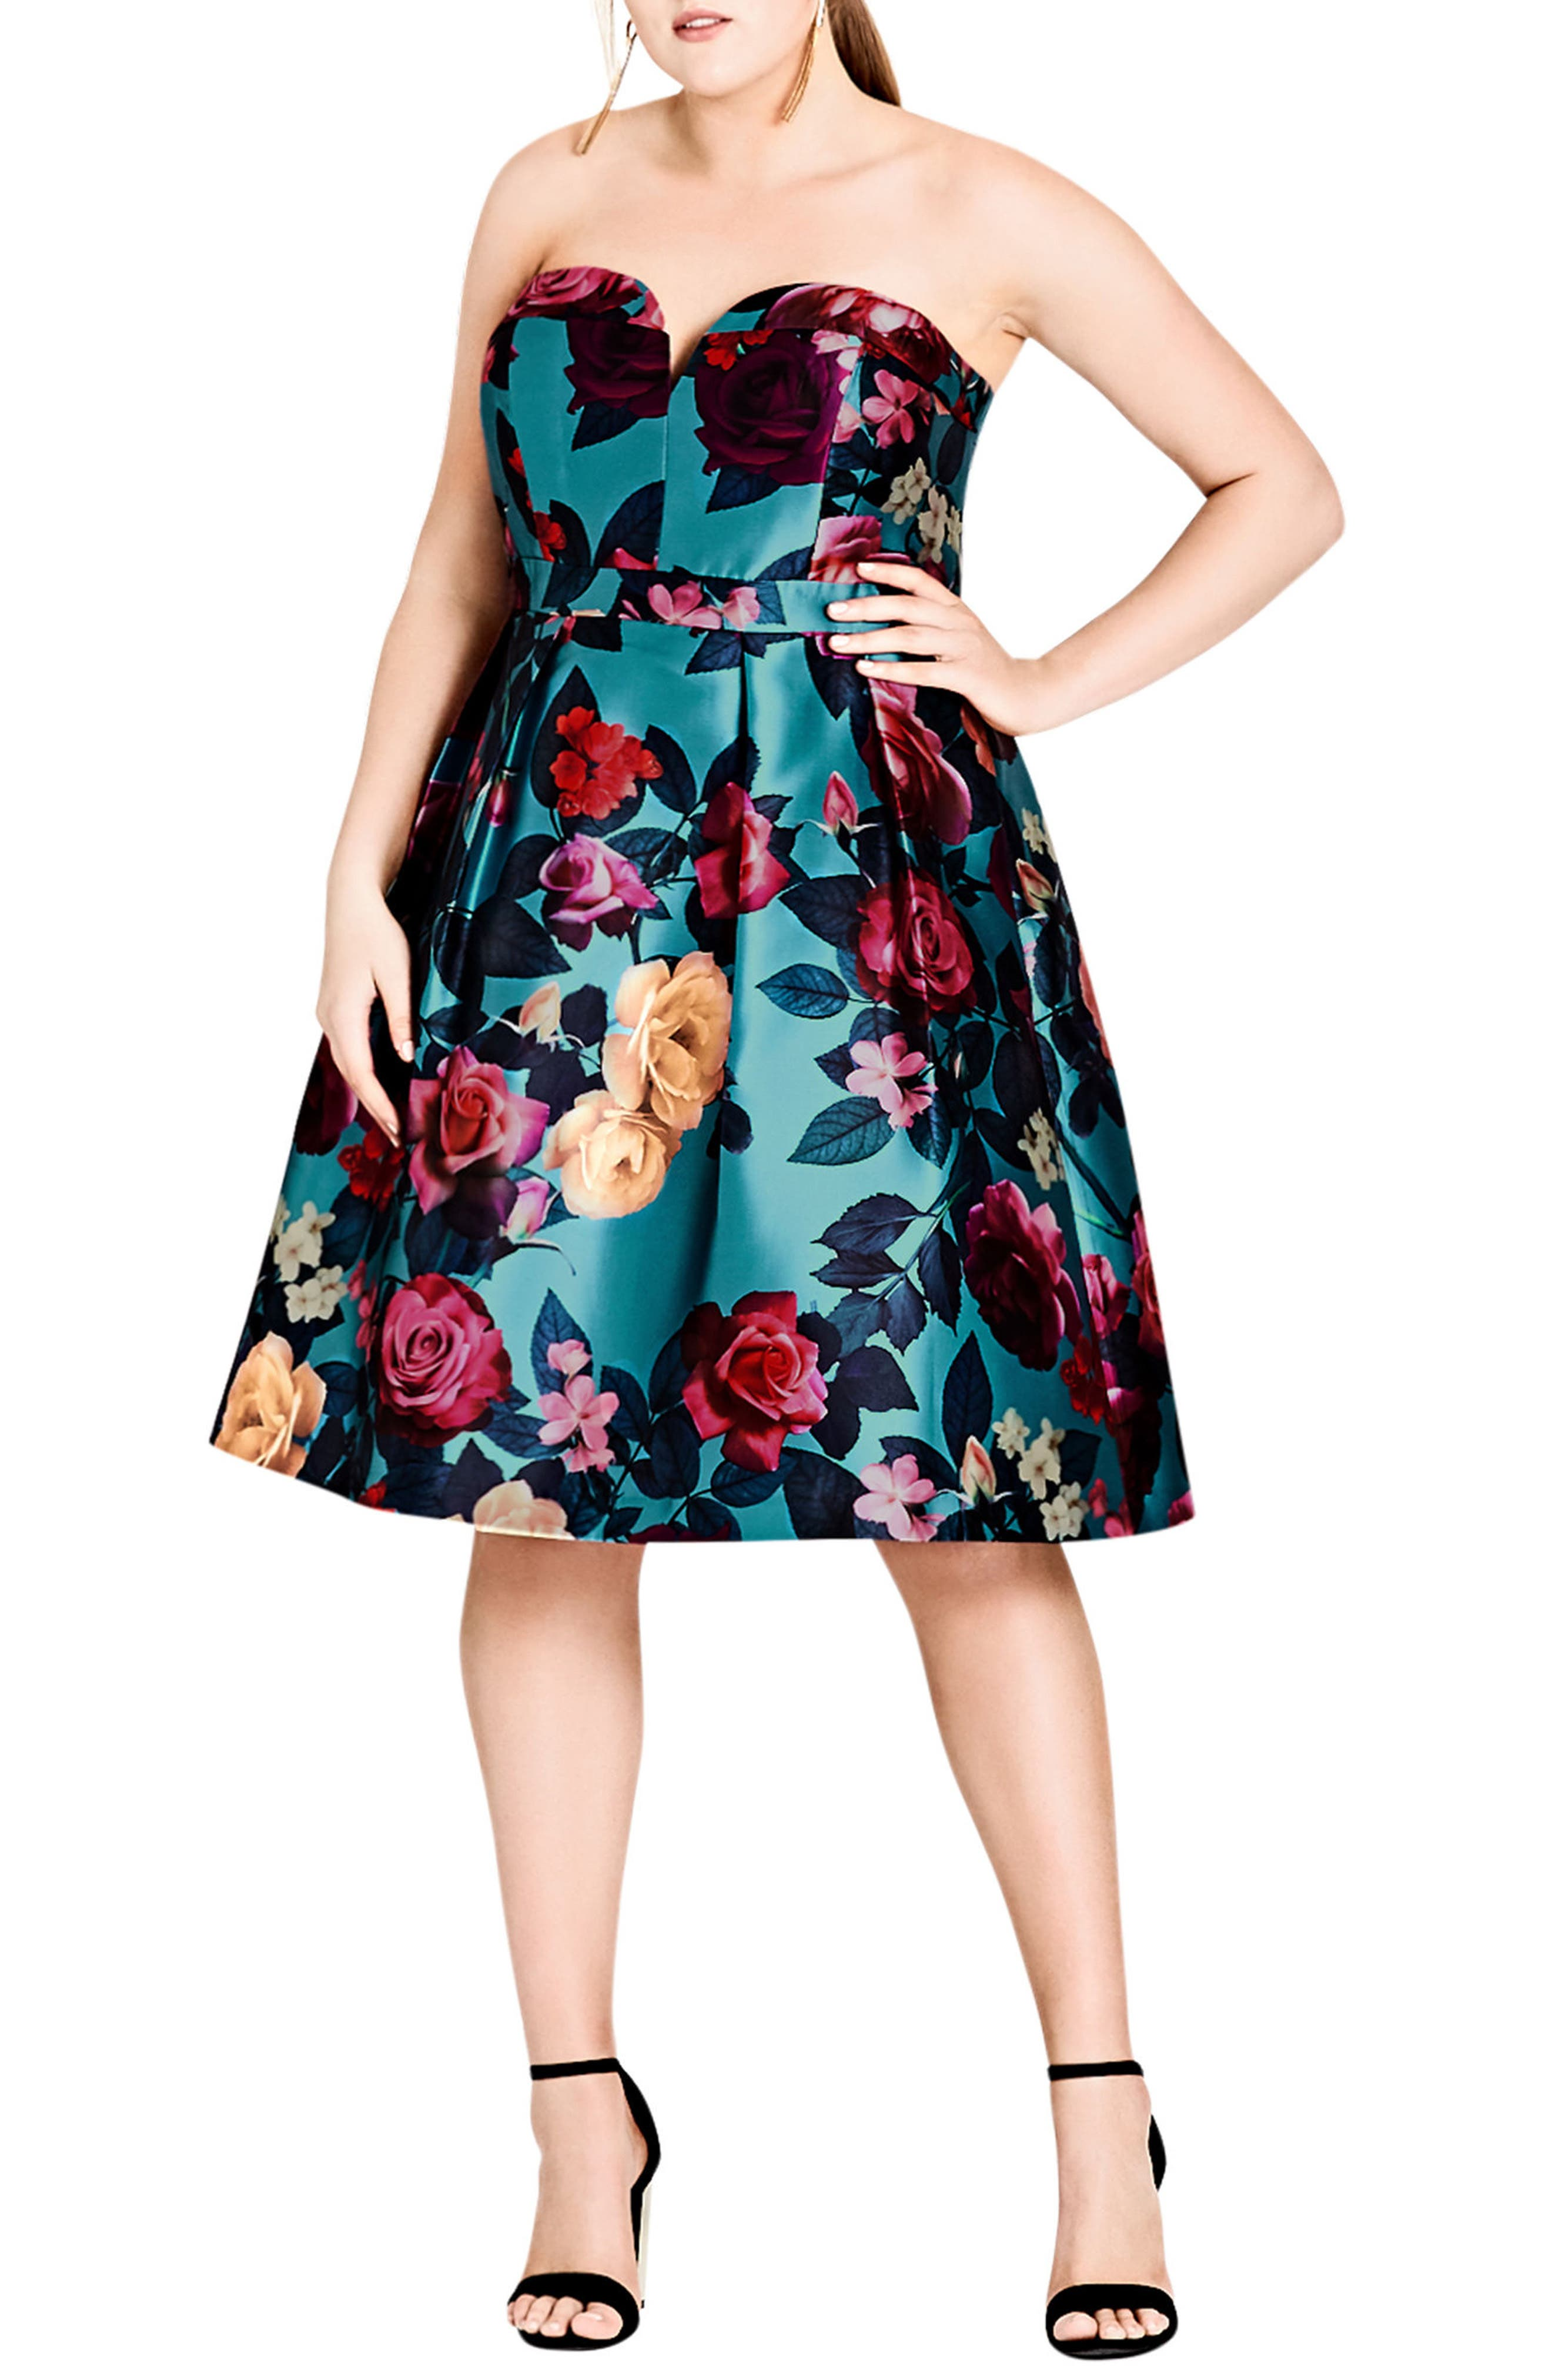 Alternate Image 1 Selected - City Chic Floral Print Fit & Flare Dress (Plus Size)